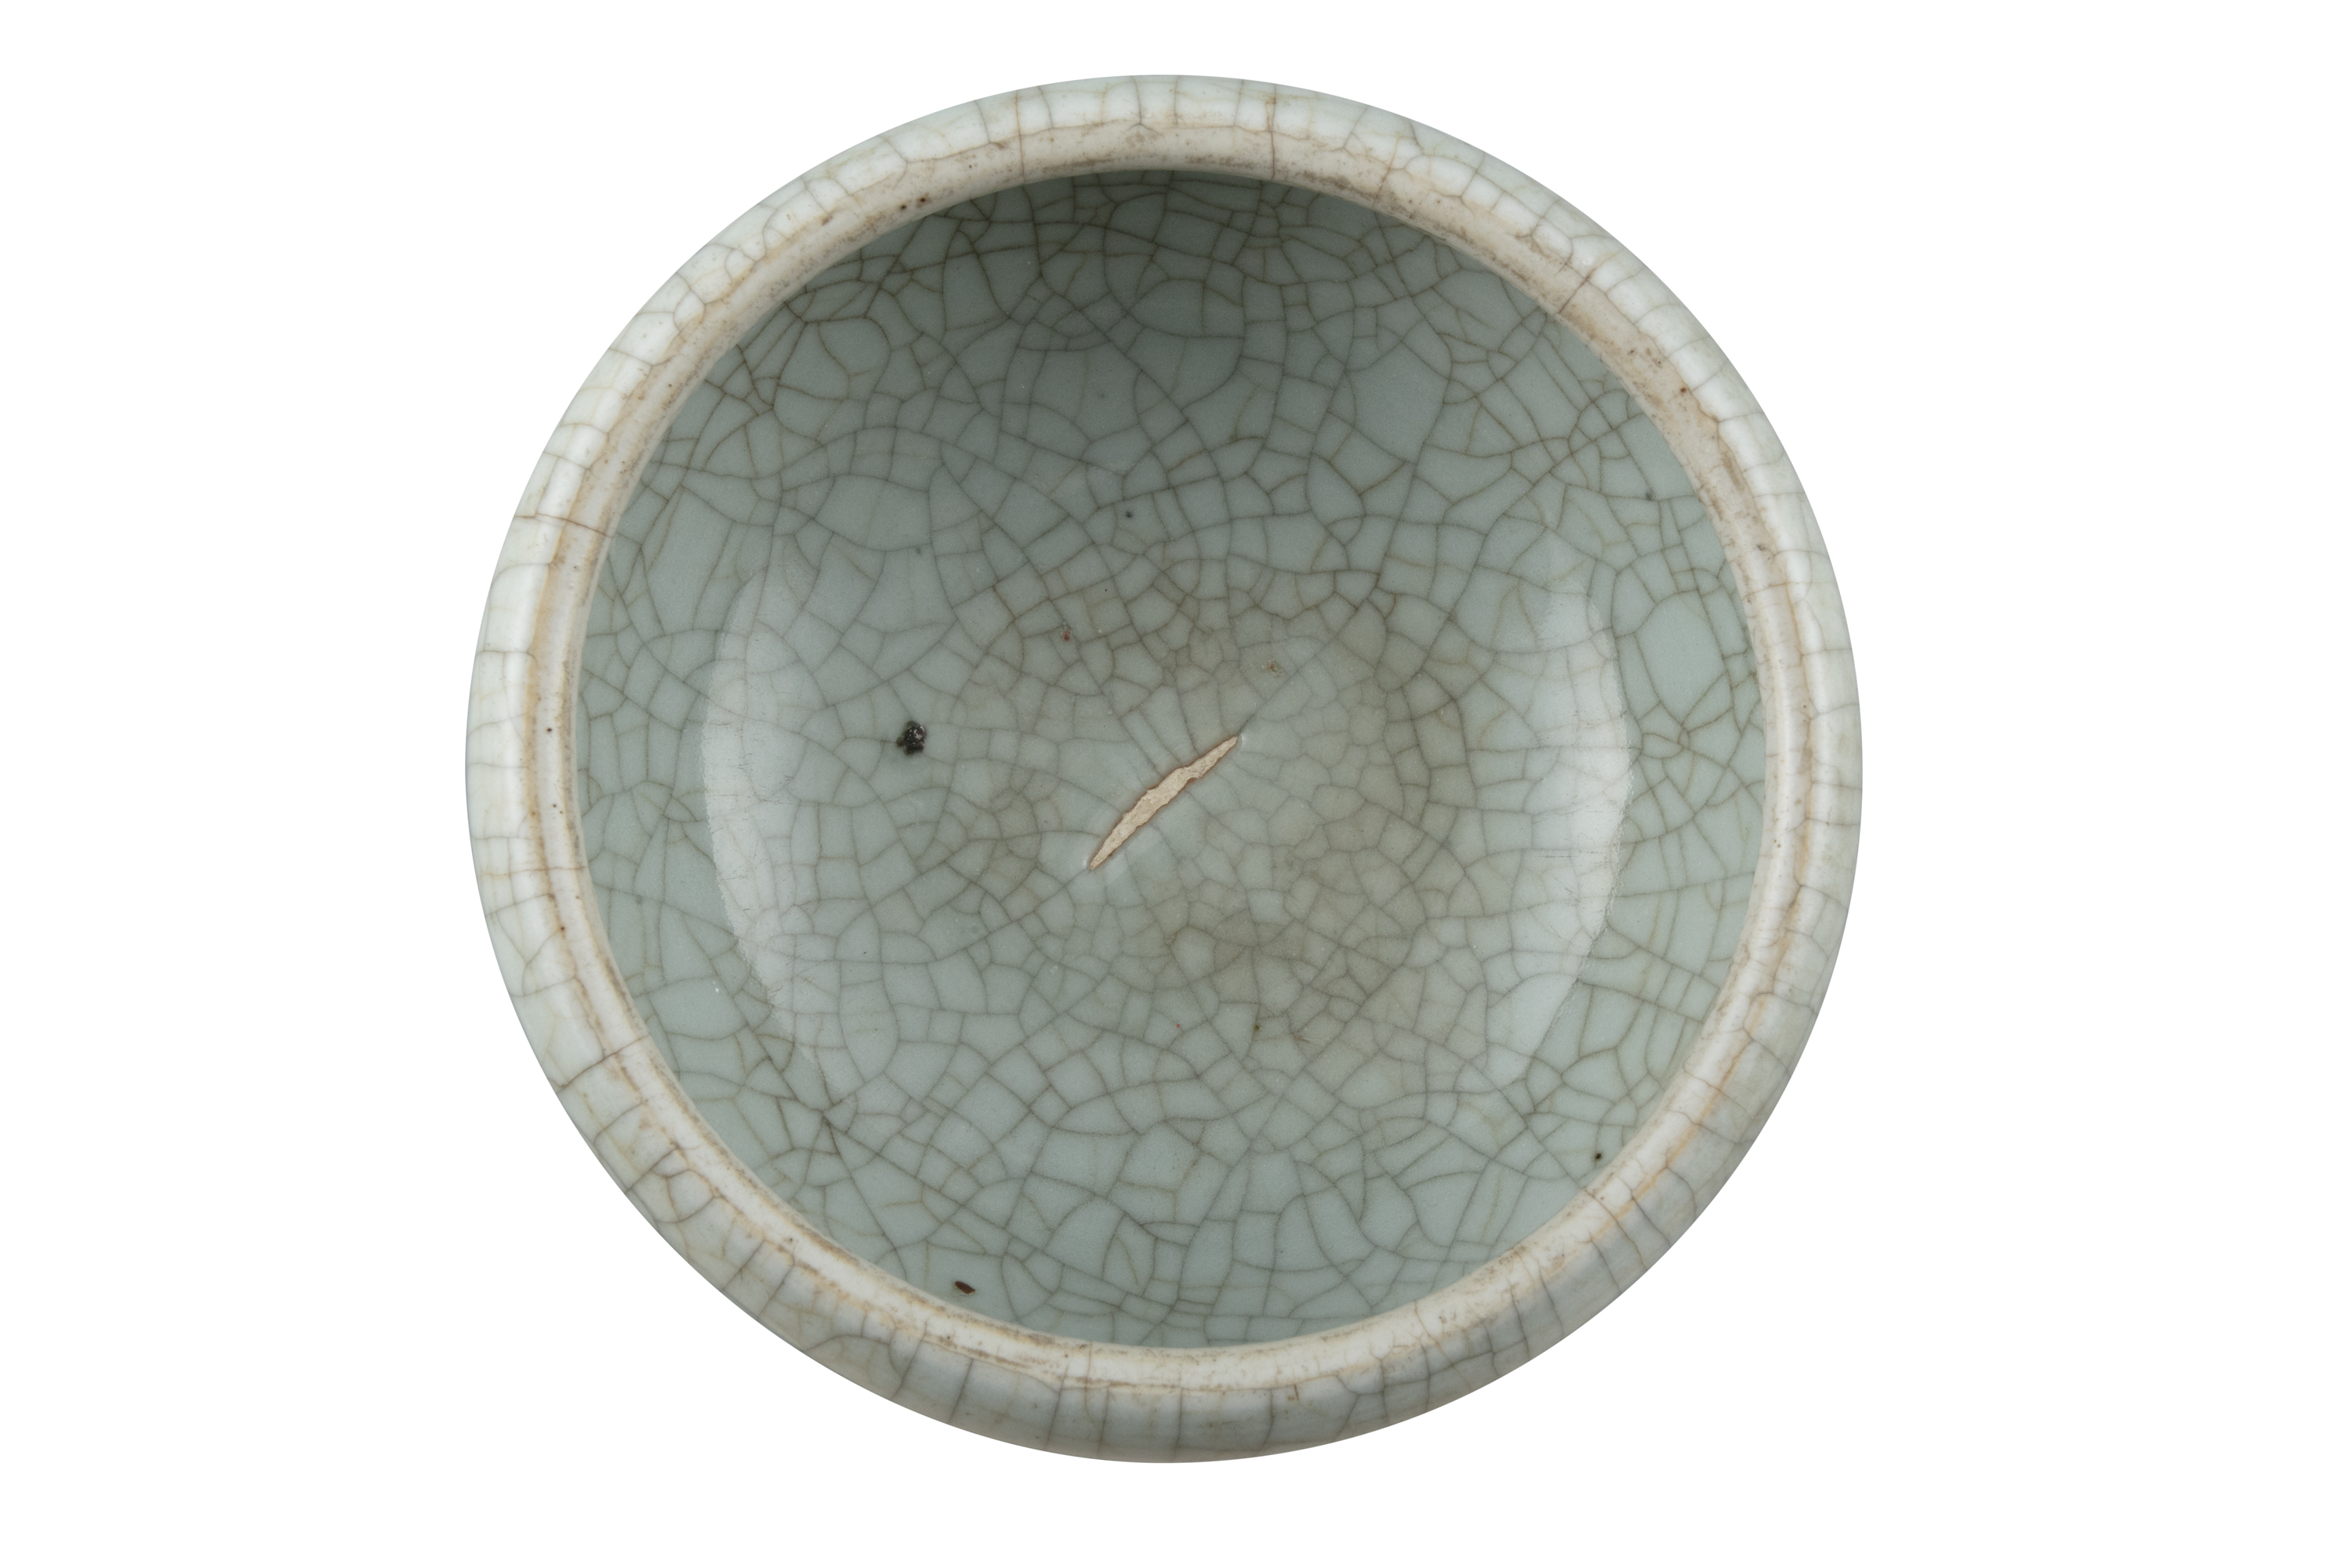 A GEYAO TYPE CRACKLED-CELADON GLAZED GLOBULAR INCENSE-BURNER China, Late Qing to Republican period - Image 6 of 11